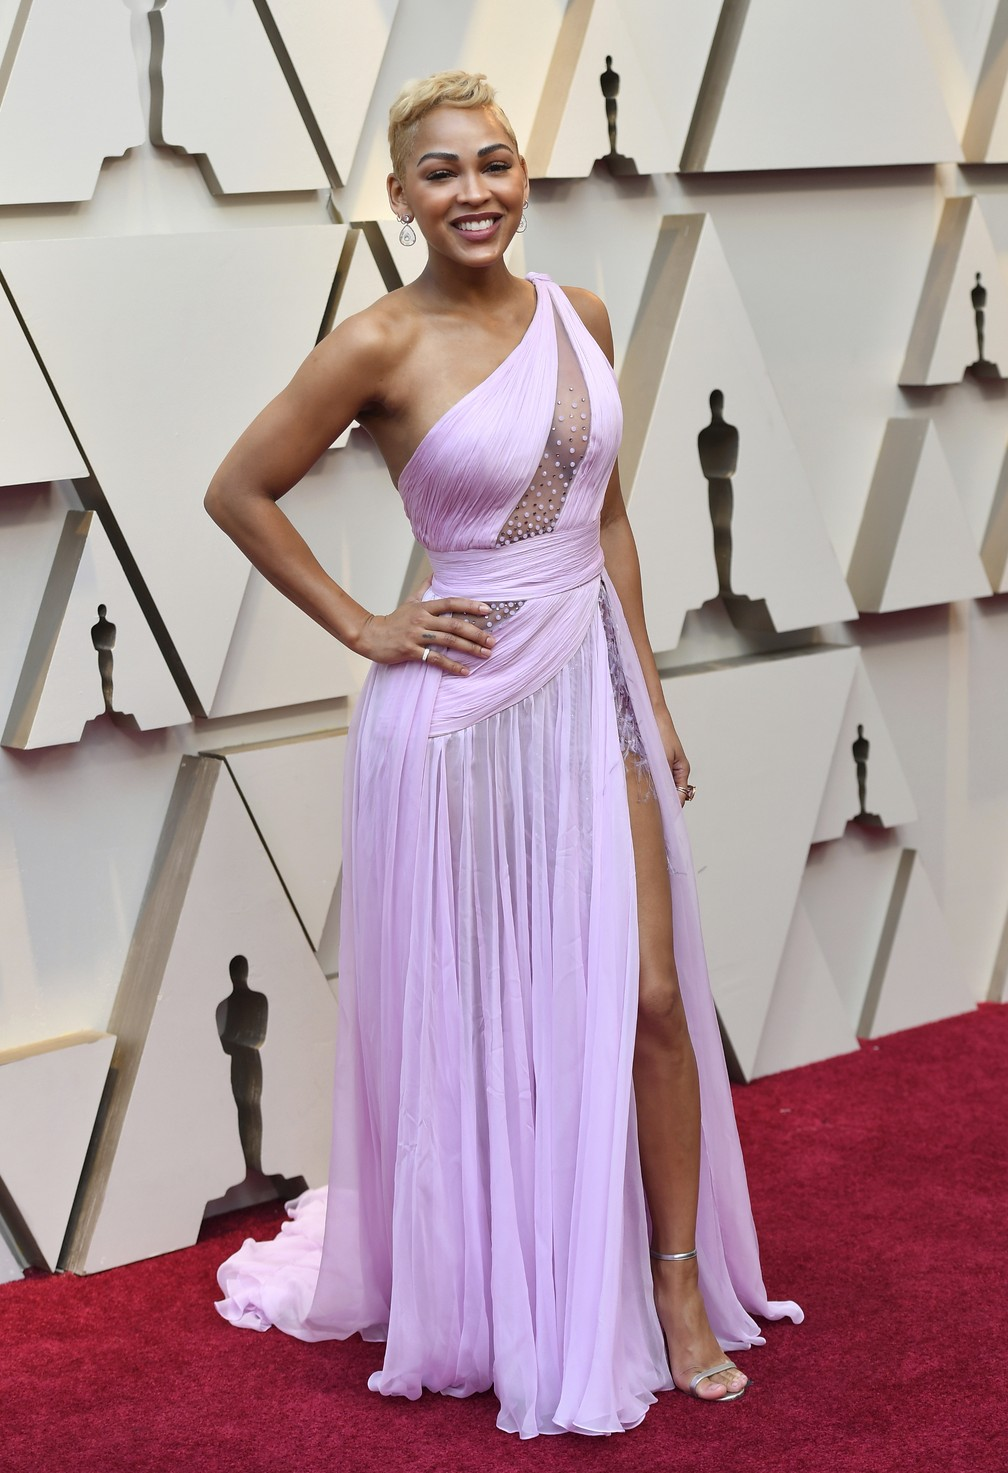 Meagan Good no tapete vermelho do Oscar 2019 — Foto: Jordan Strauss/Invision/AP